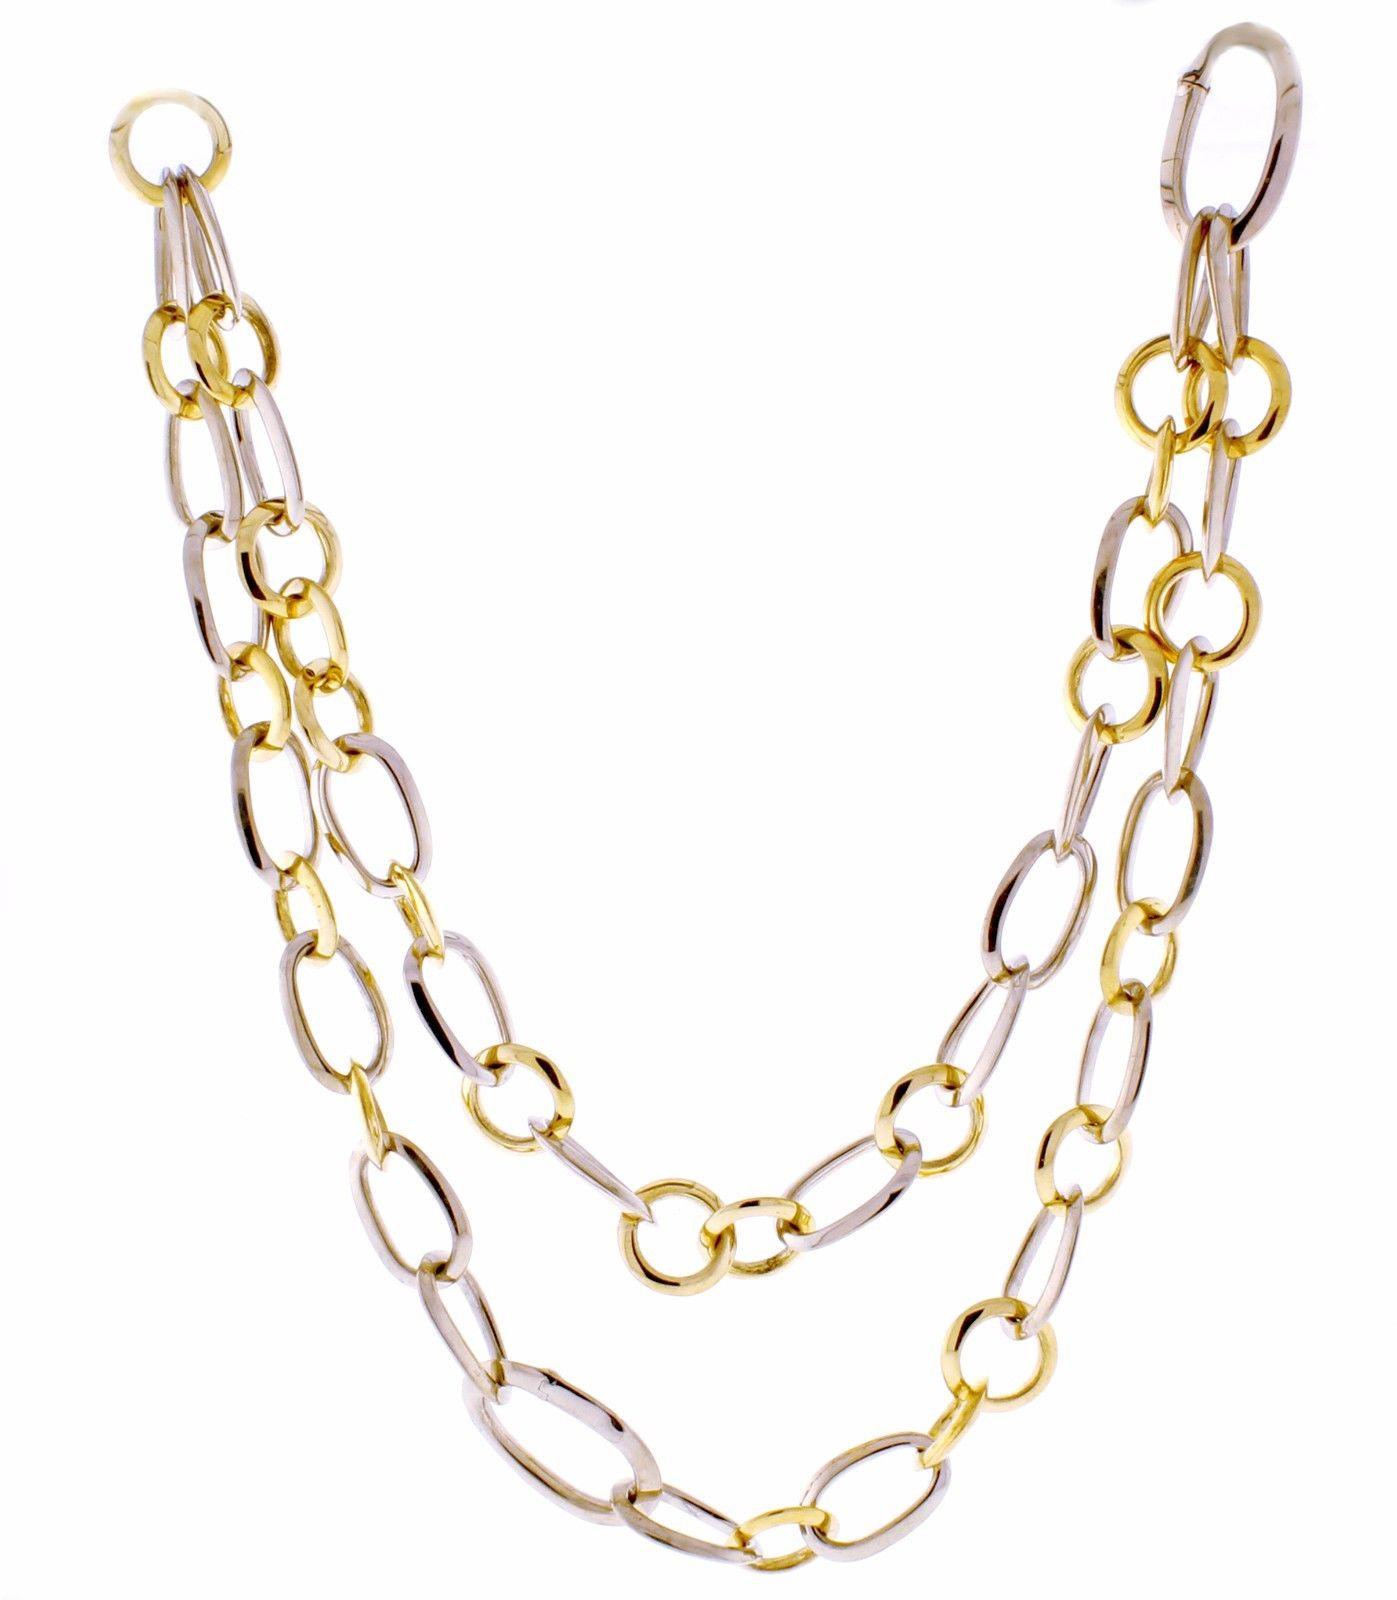 """""Pomellato 18K White & Yellow Gold Link Necklace Bracelet Combination"""""" 1228633"